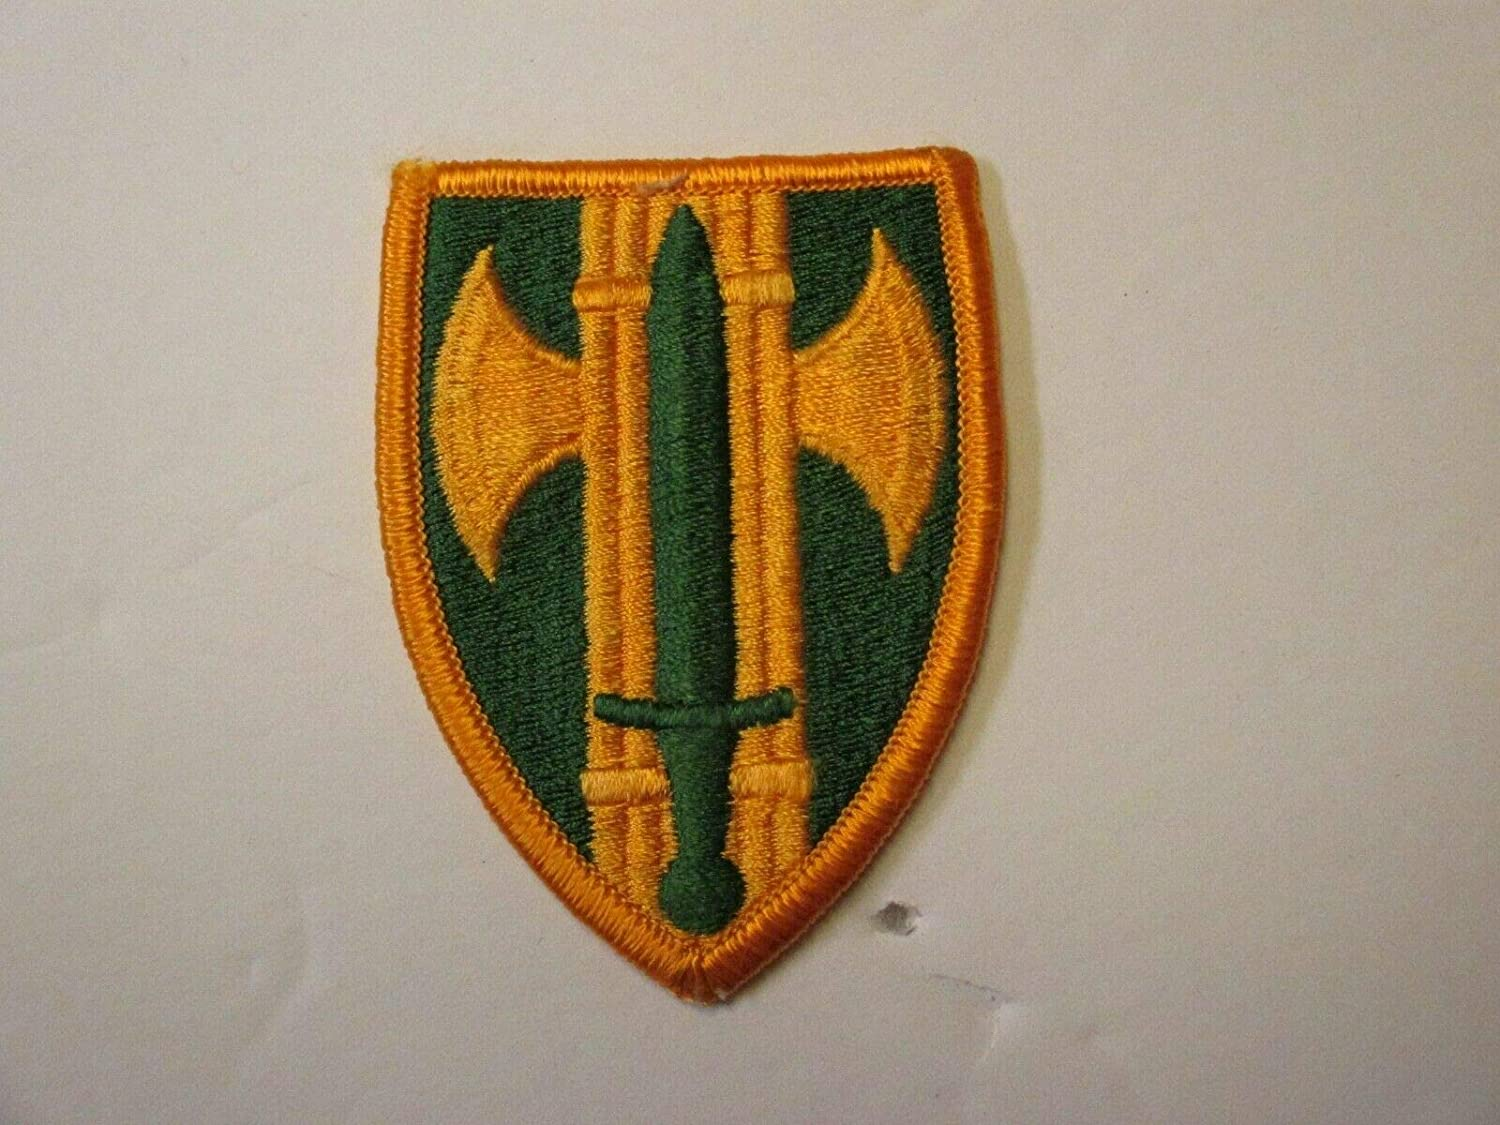 Vintage Reproduction e0381 US Army Vietnam 18th Military Police